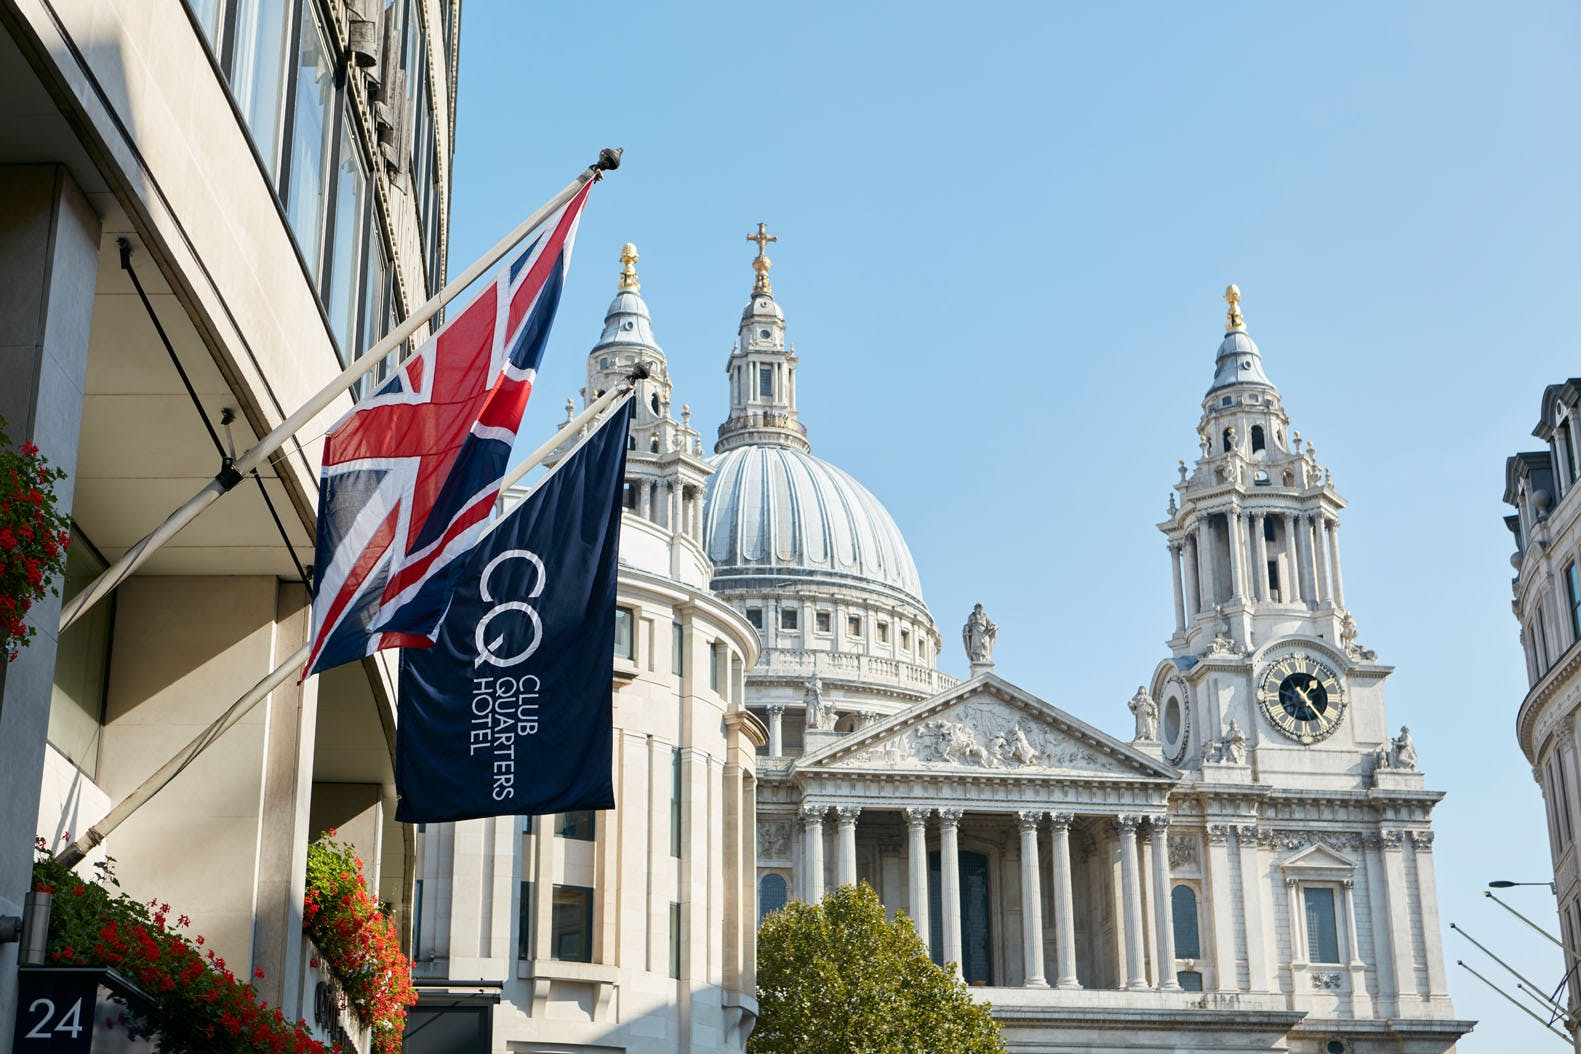 Club Quarters Hotel, St. Paul's, London and St. Paul's Cathedral